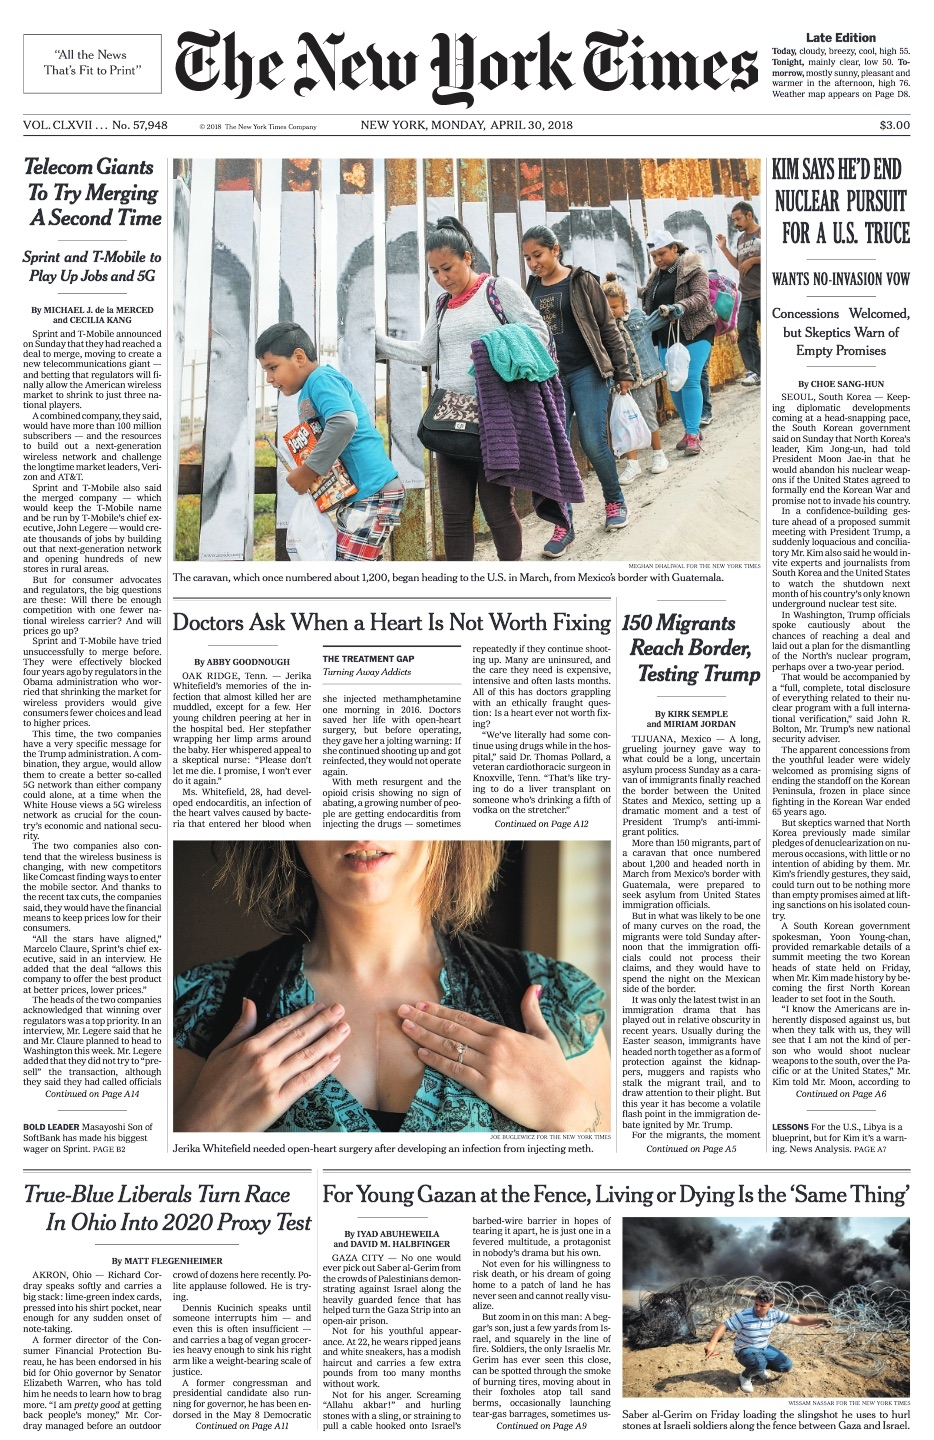 NYT_FrontPage_043018.jpg